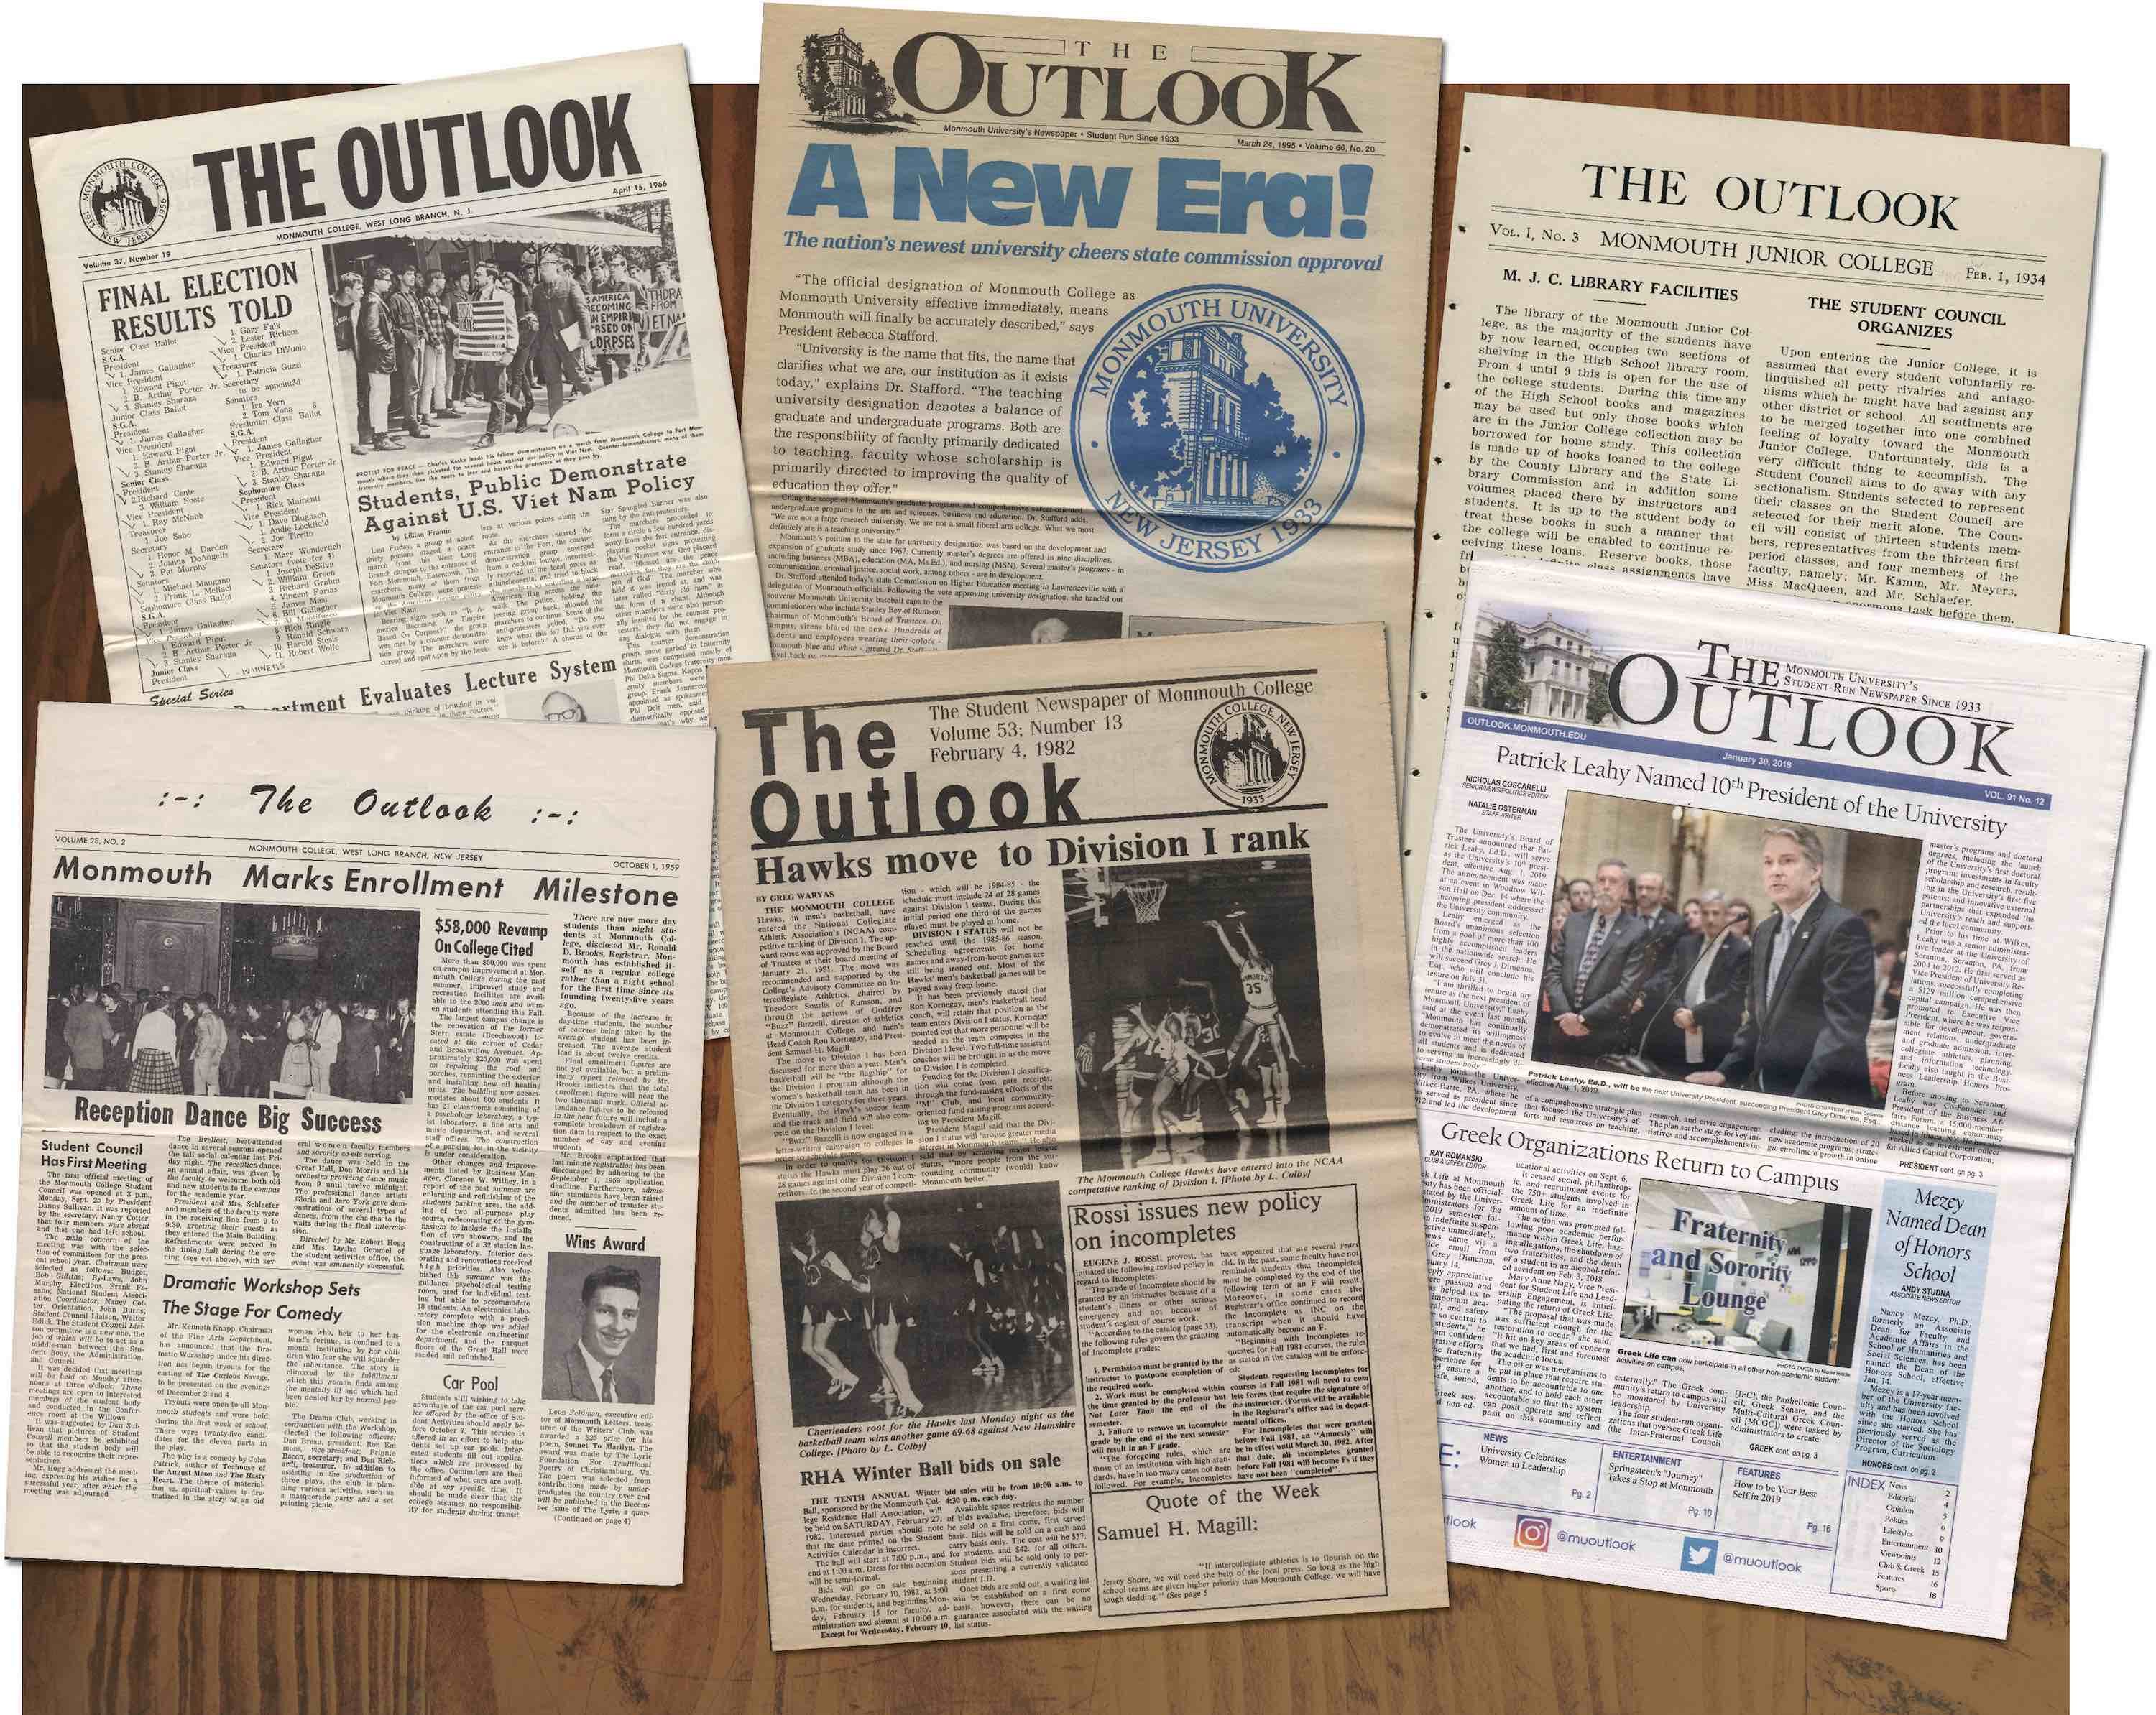 Collage of Outlook issues spanning different decades